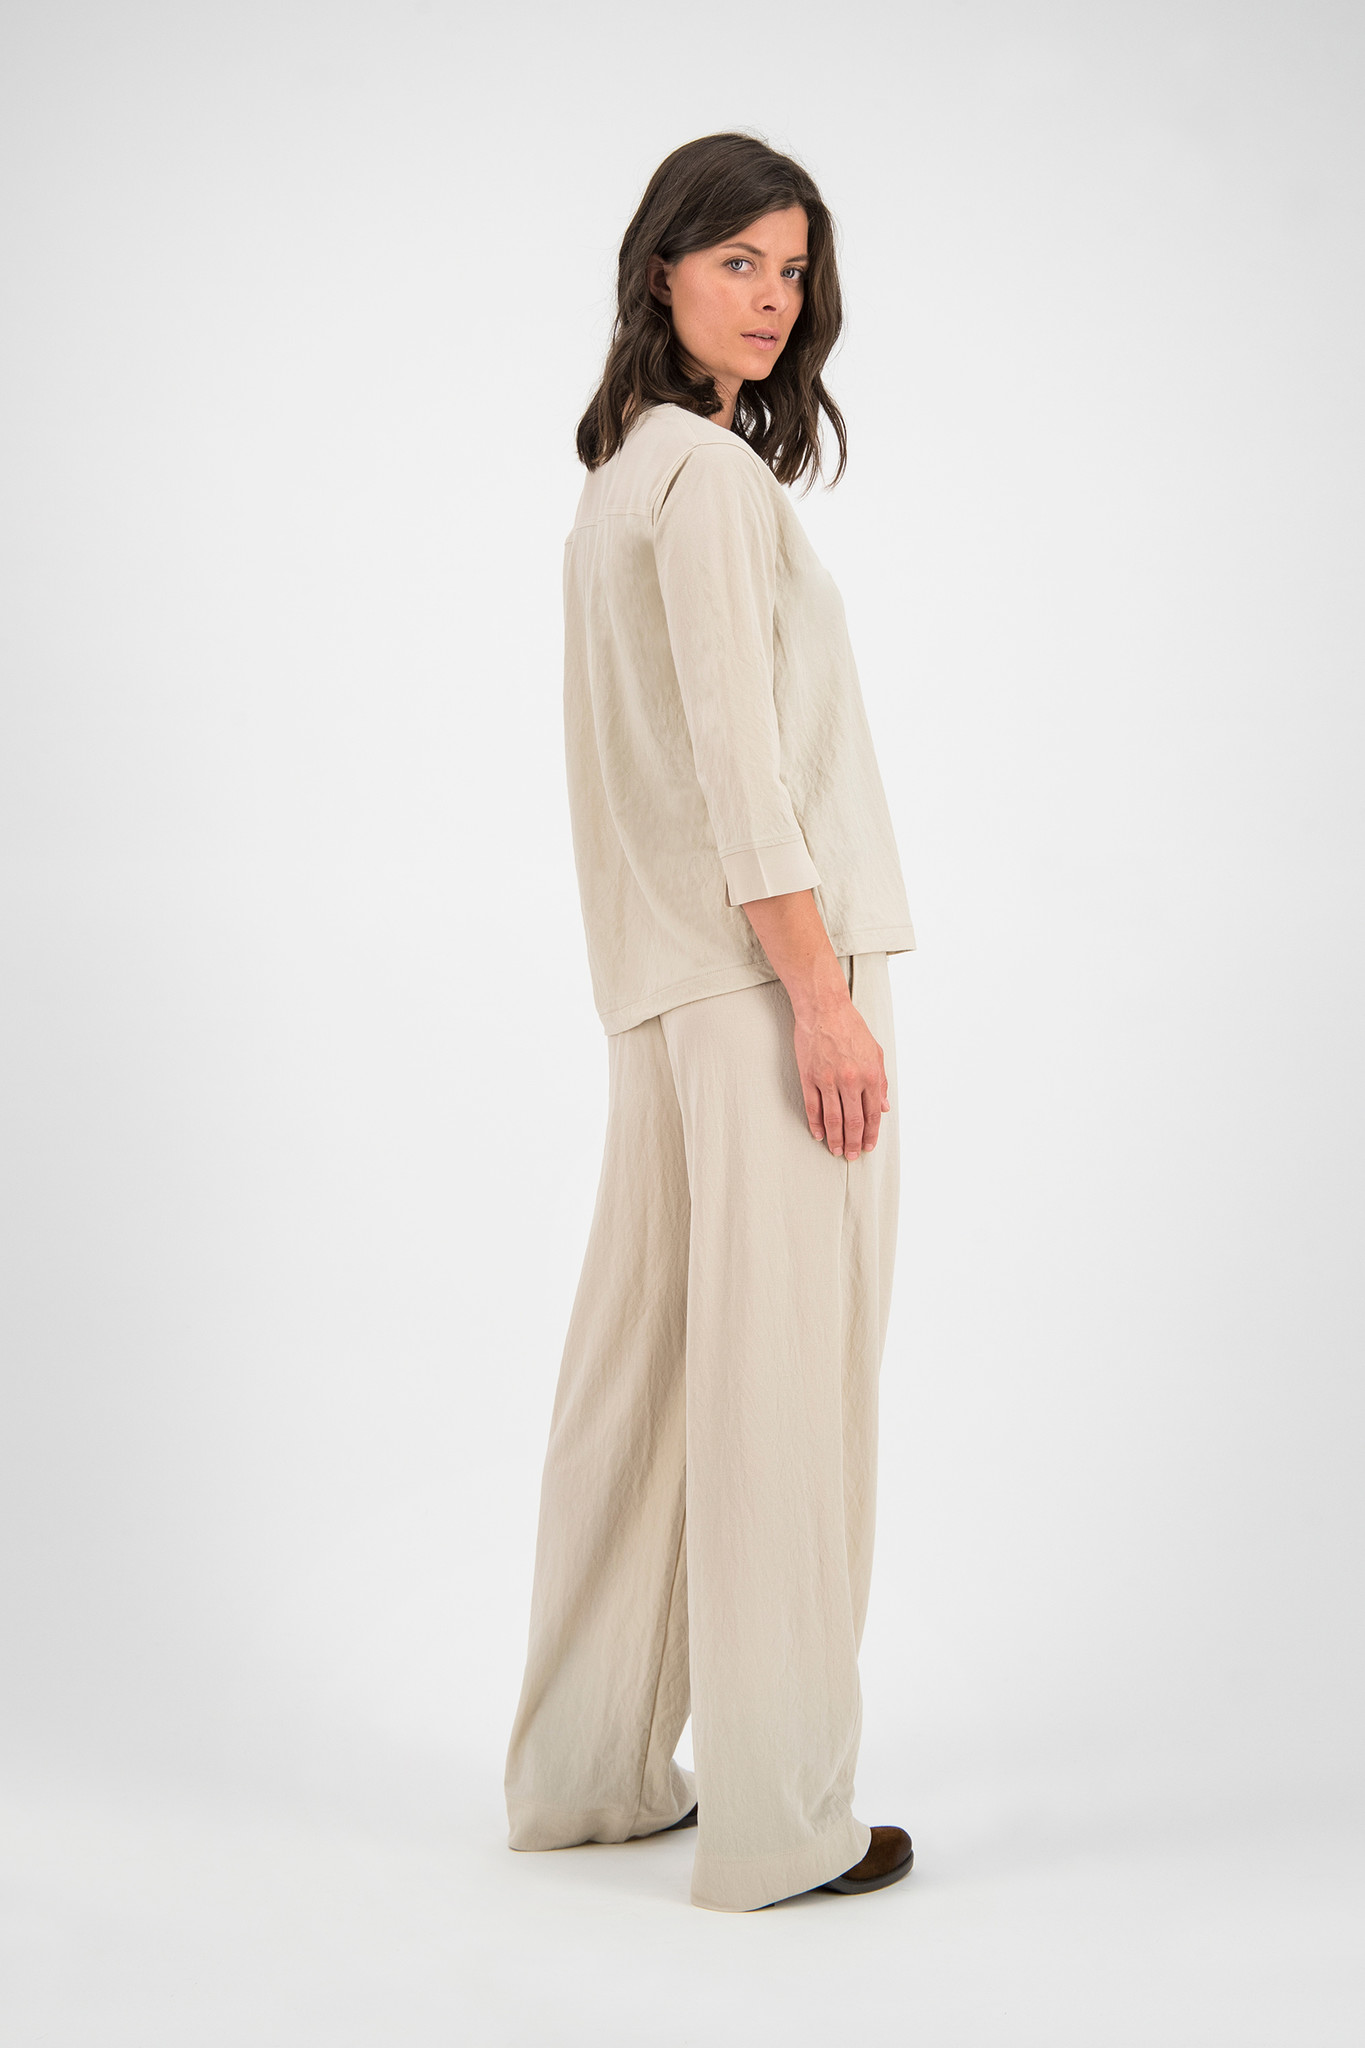 SYLVER Crêpe Stretch Trousers Flared - Oatmeal